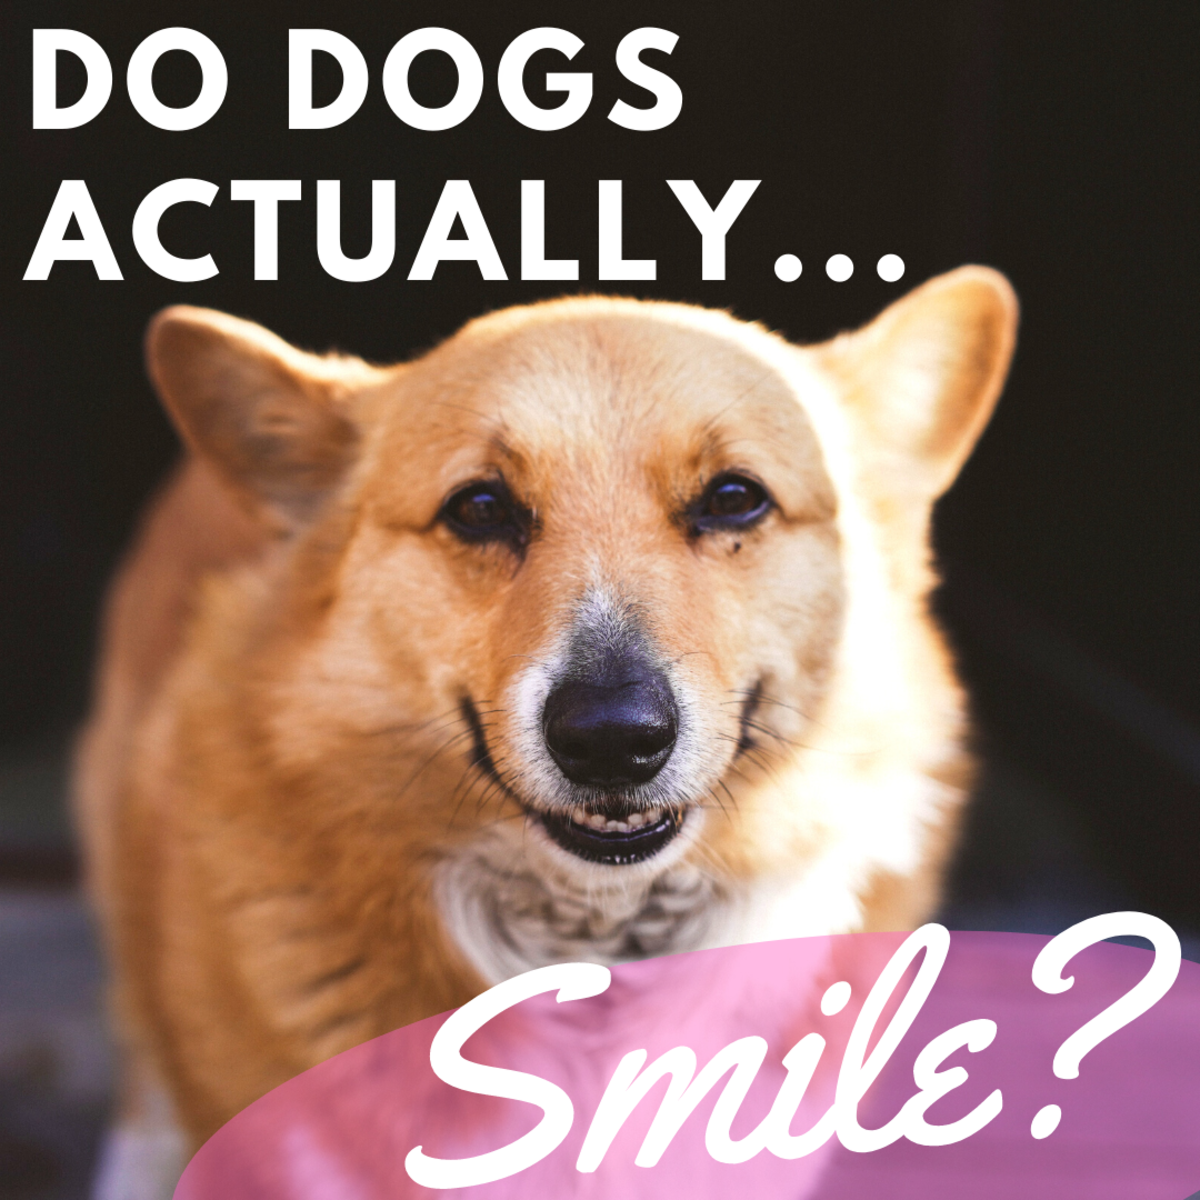 Is it true that dogs can smile?